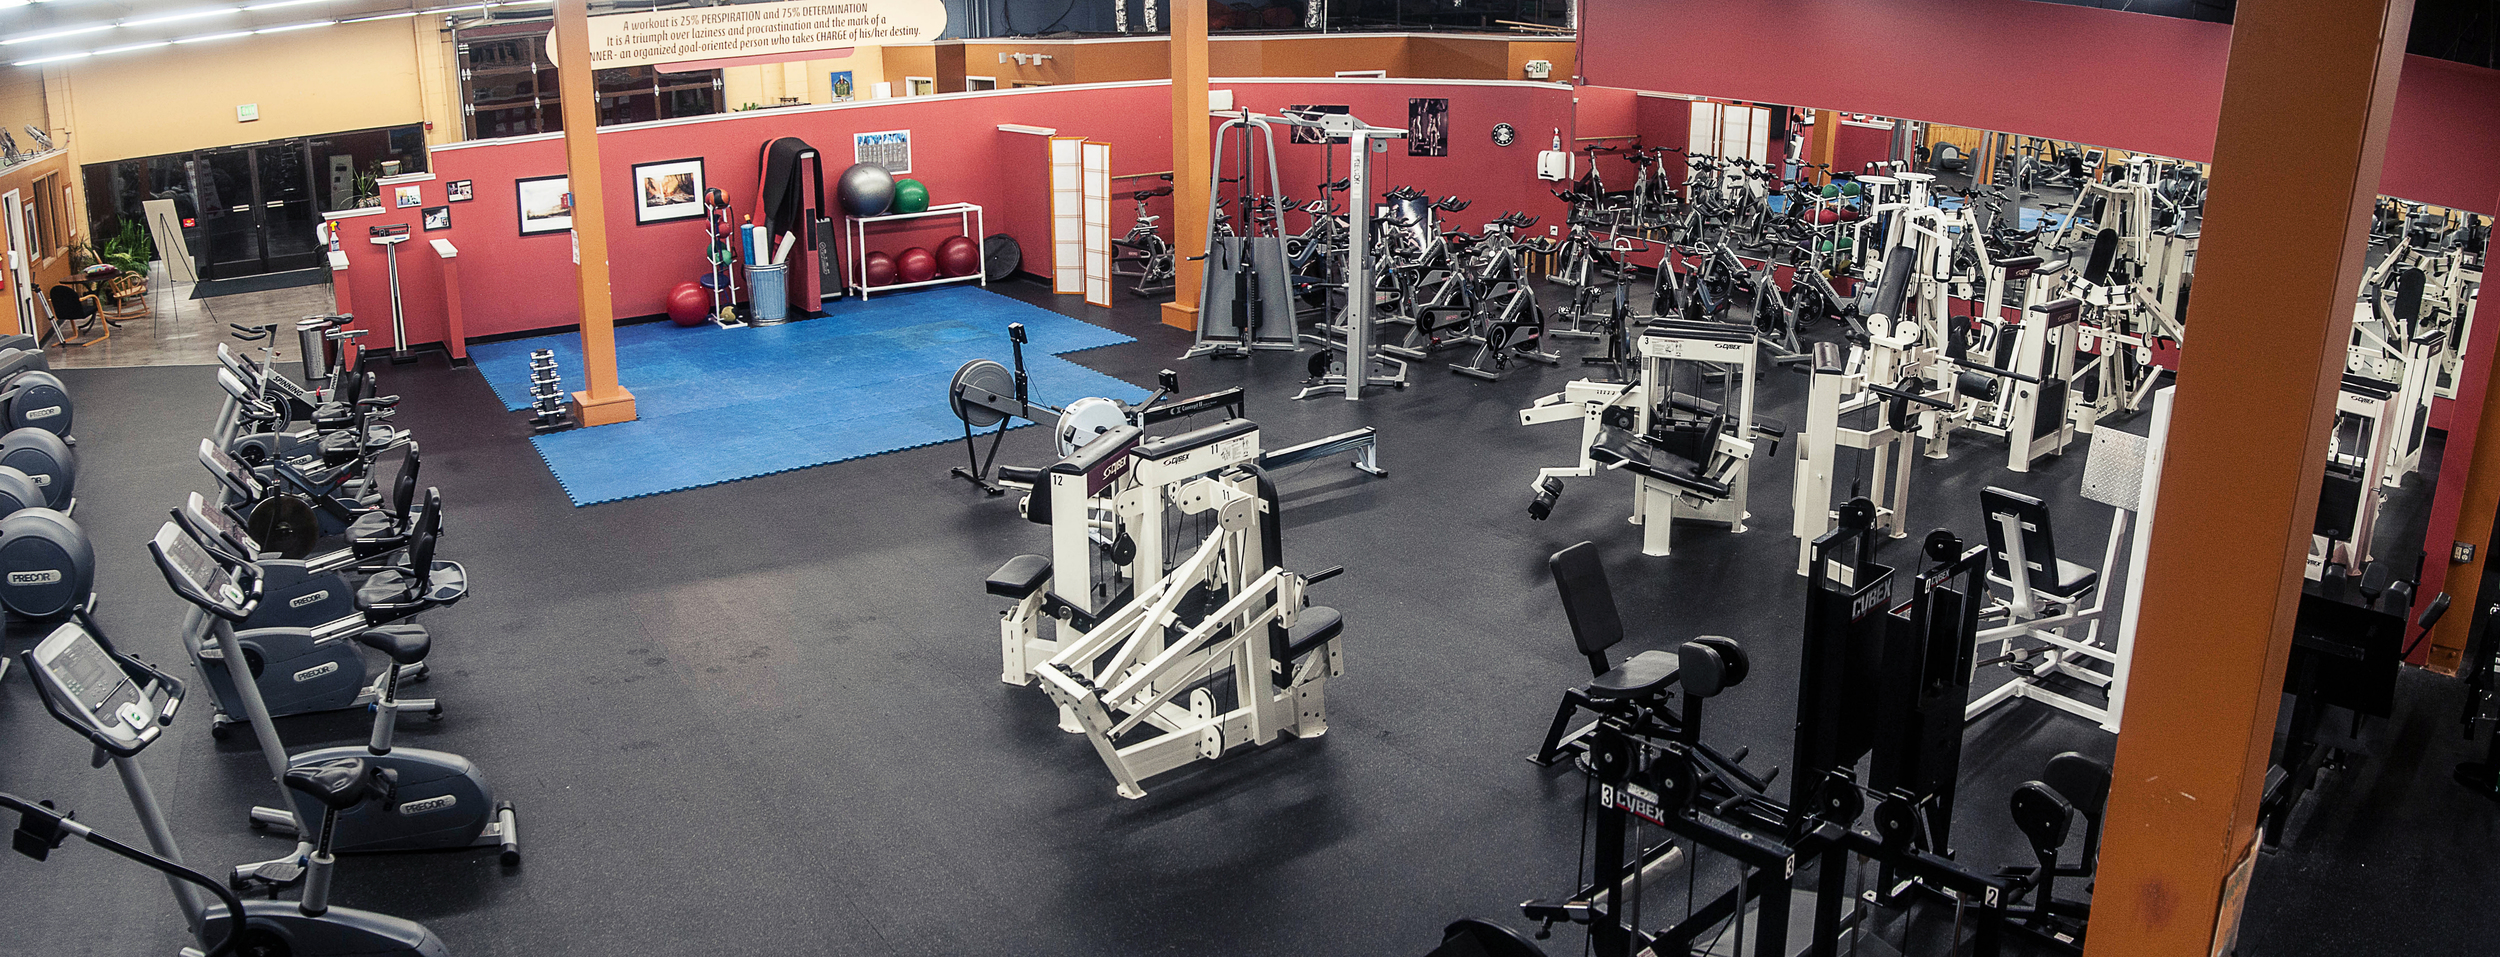 Cybex Circuit Training Machines + Stretching Area - Cybex Training AreaFunctional Trainer8 Upper Body Machines2 Core Machines9 Lower Body Machines2 RowersSpin Area with Brand New StarTrac Spin CyclesStretching AreaPadded FloorMedicine & Exercise BallsFoam RollersTheraBands